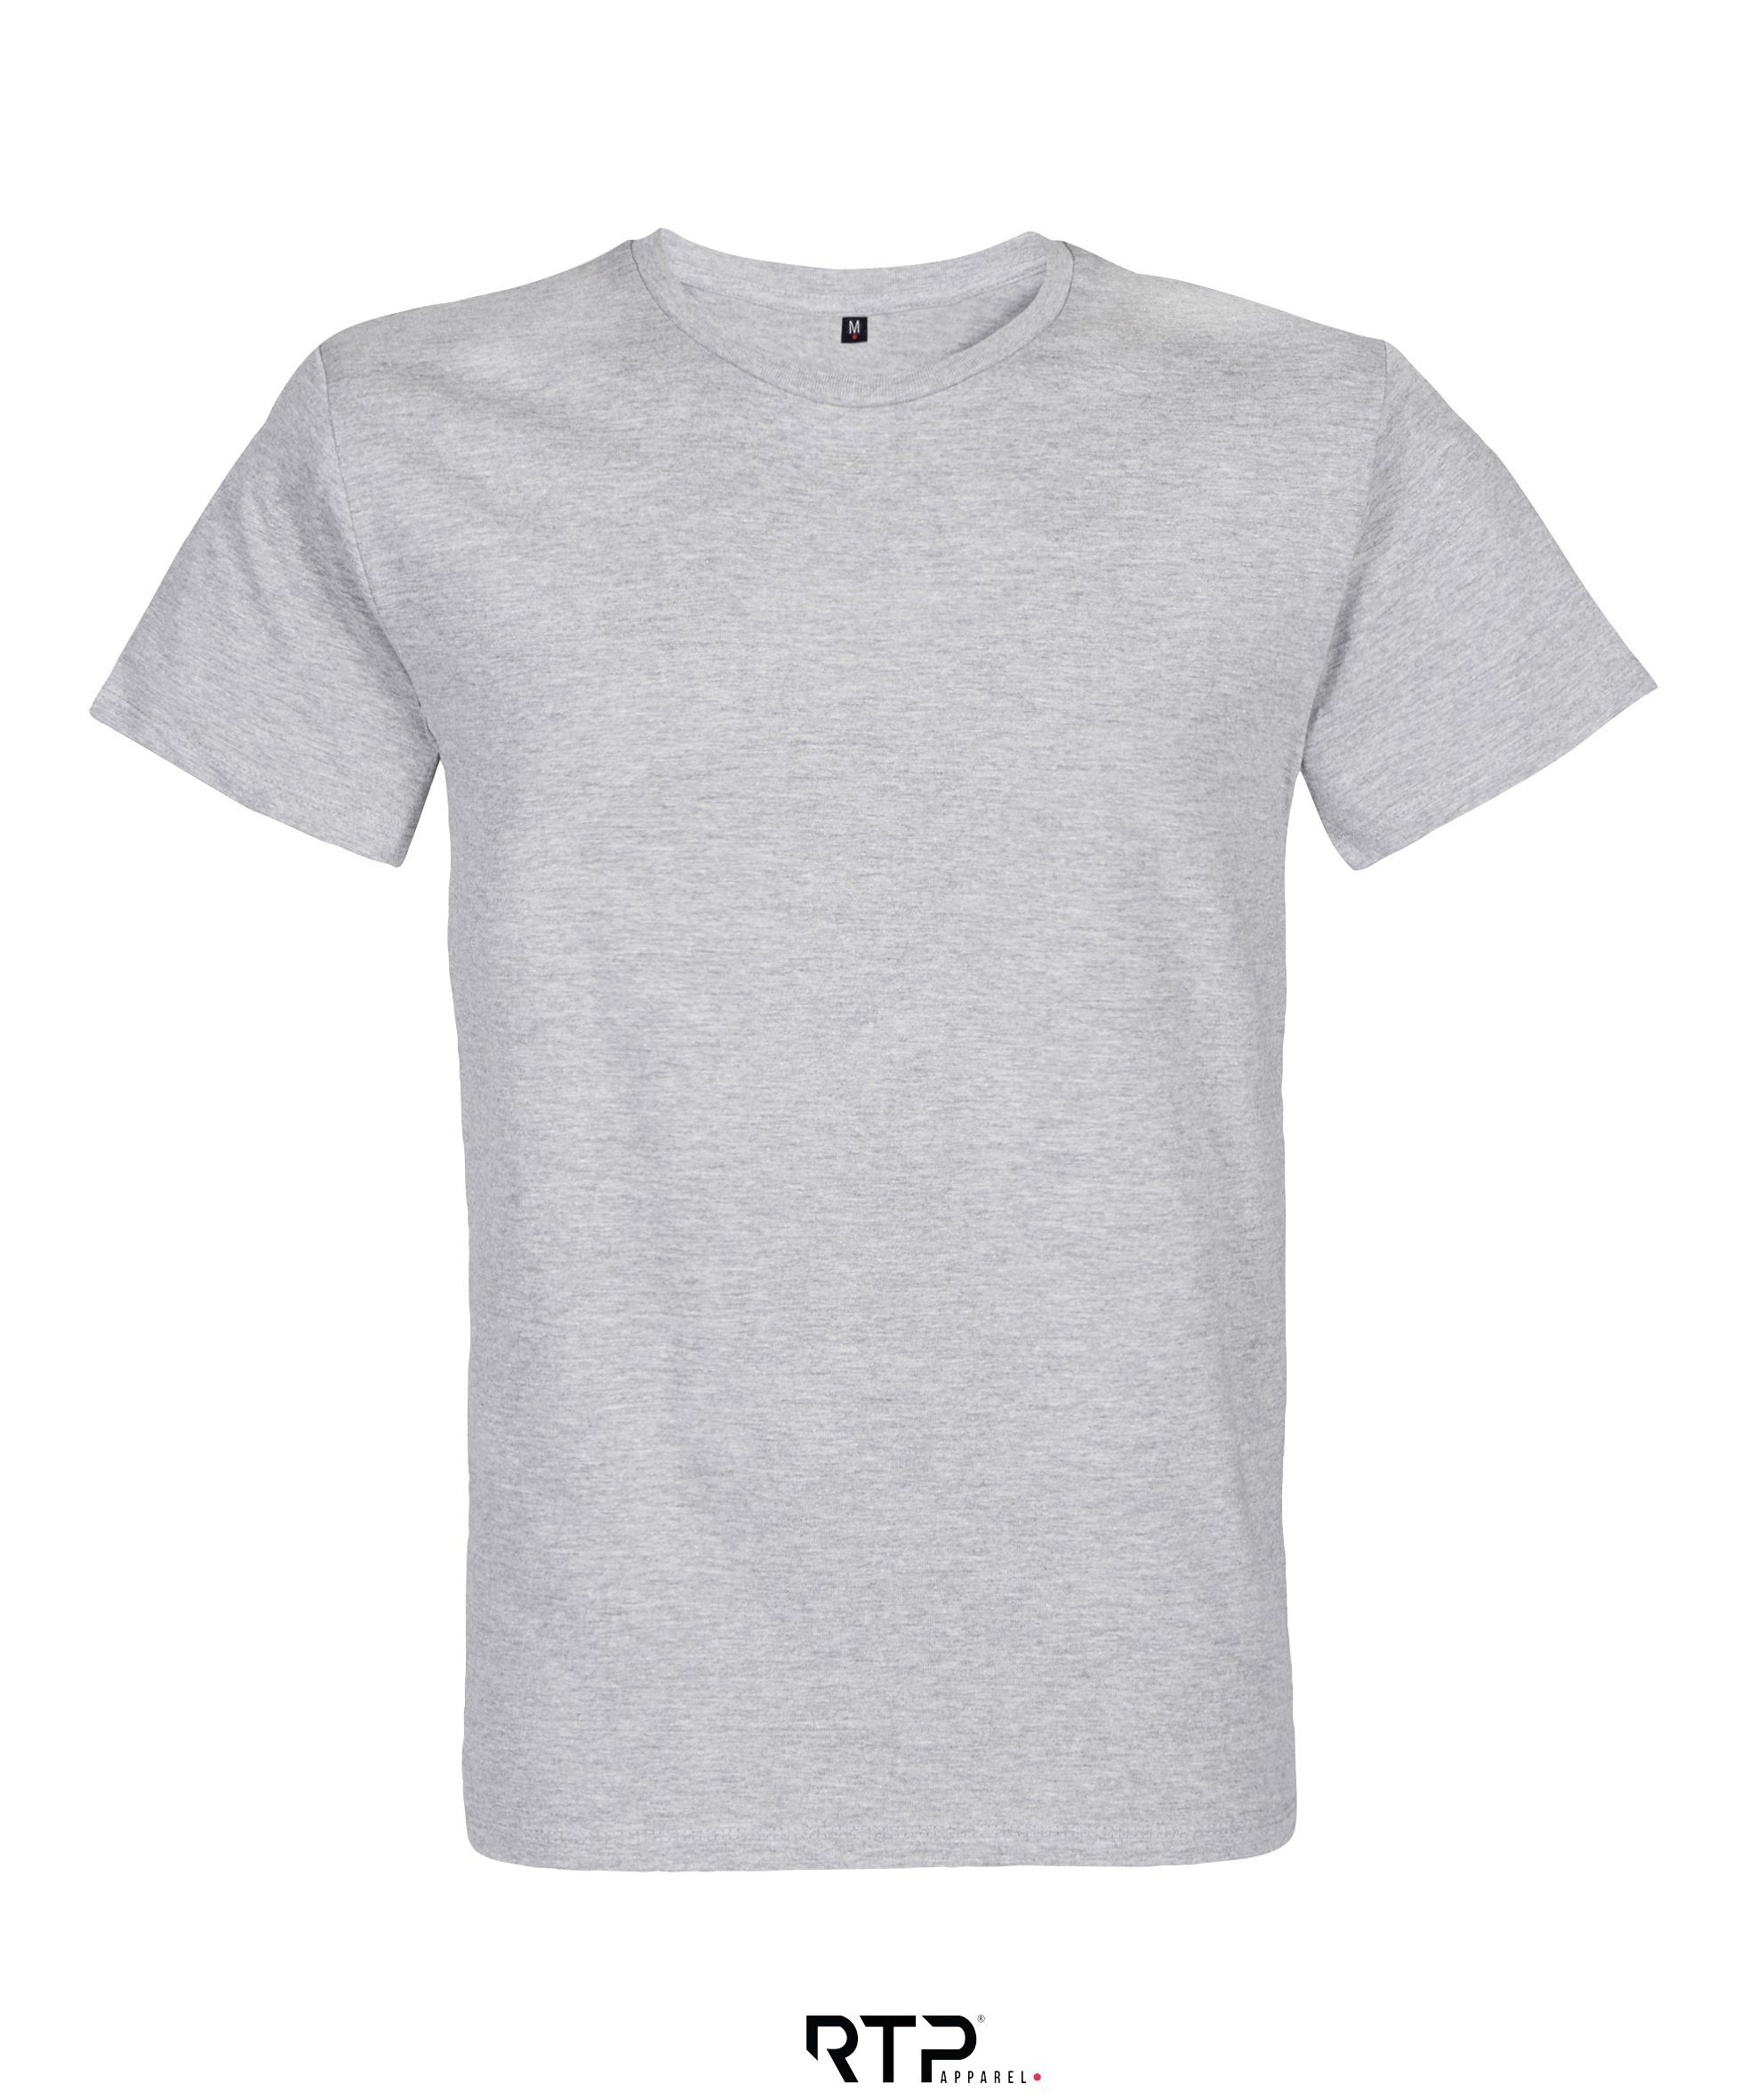 Tee-shirt homme manches courtes